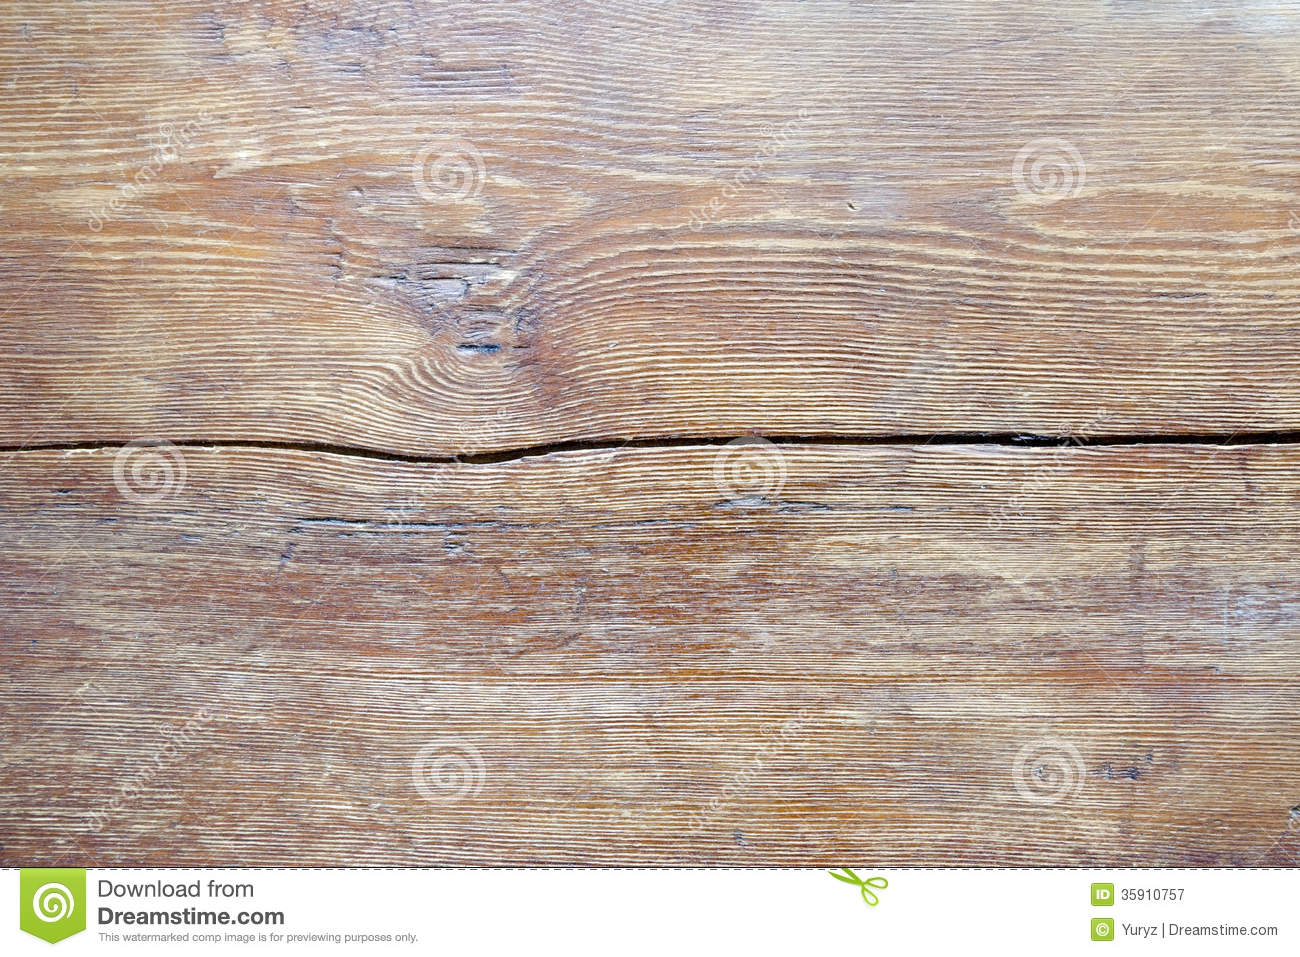 Wooden table surface